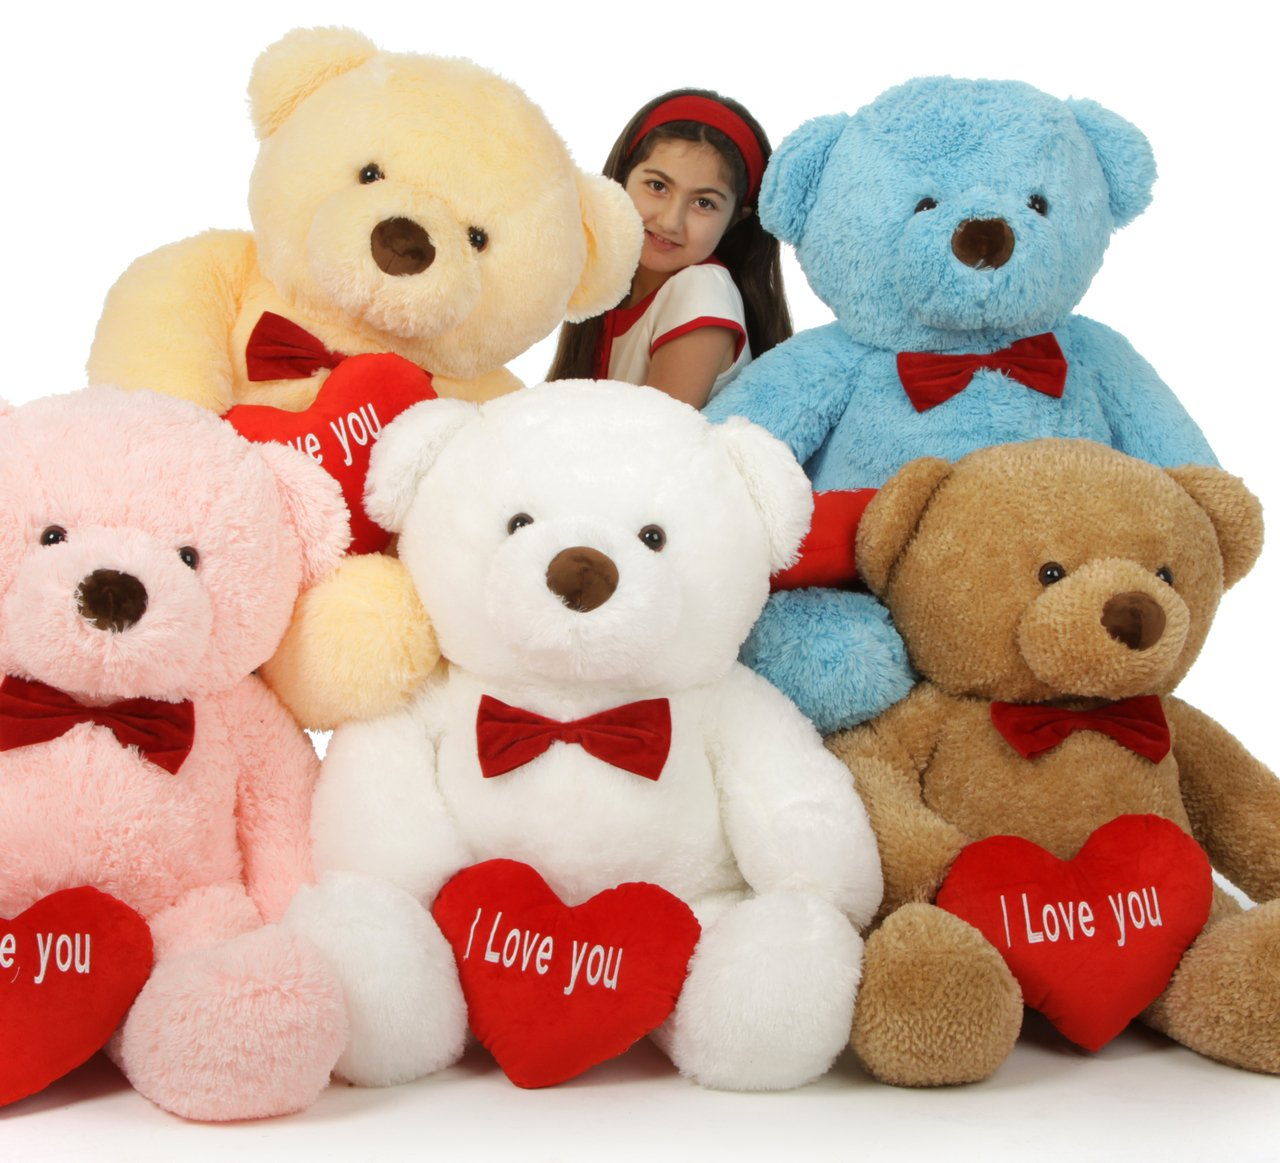 Cute Teddy Bears Wallpapers Hd 50 Teddy Bear Pictures For Valentines Day 2019 Hug2love